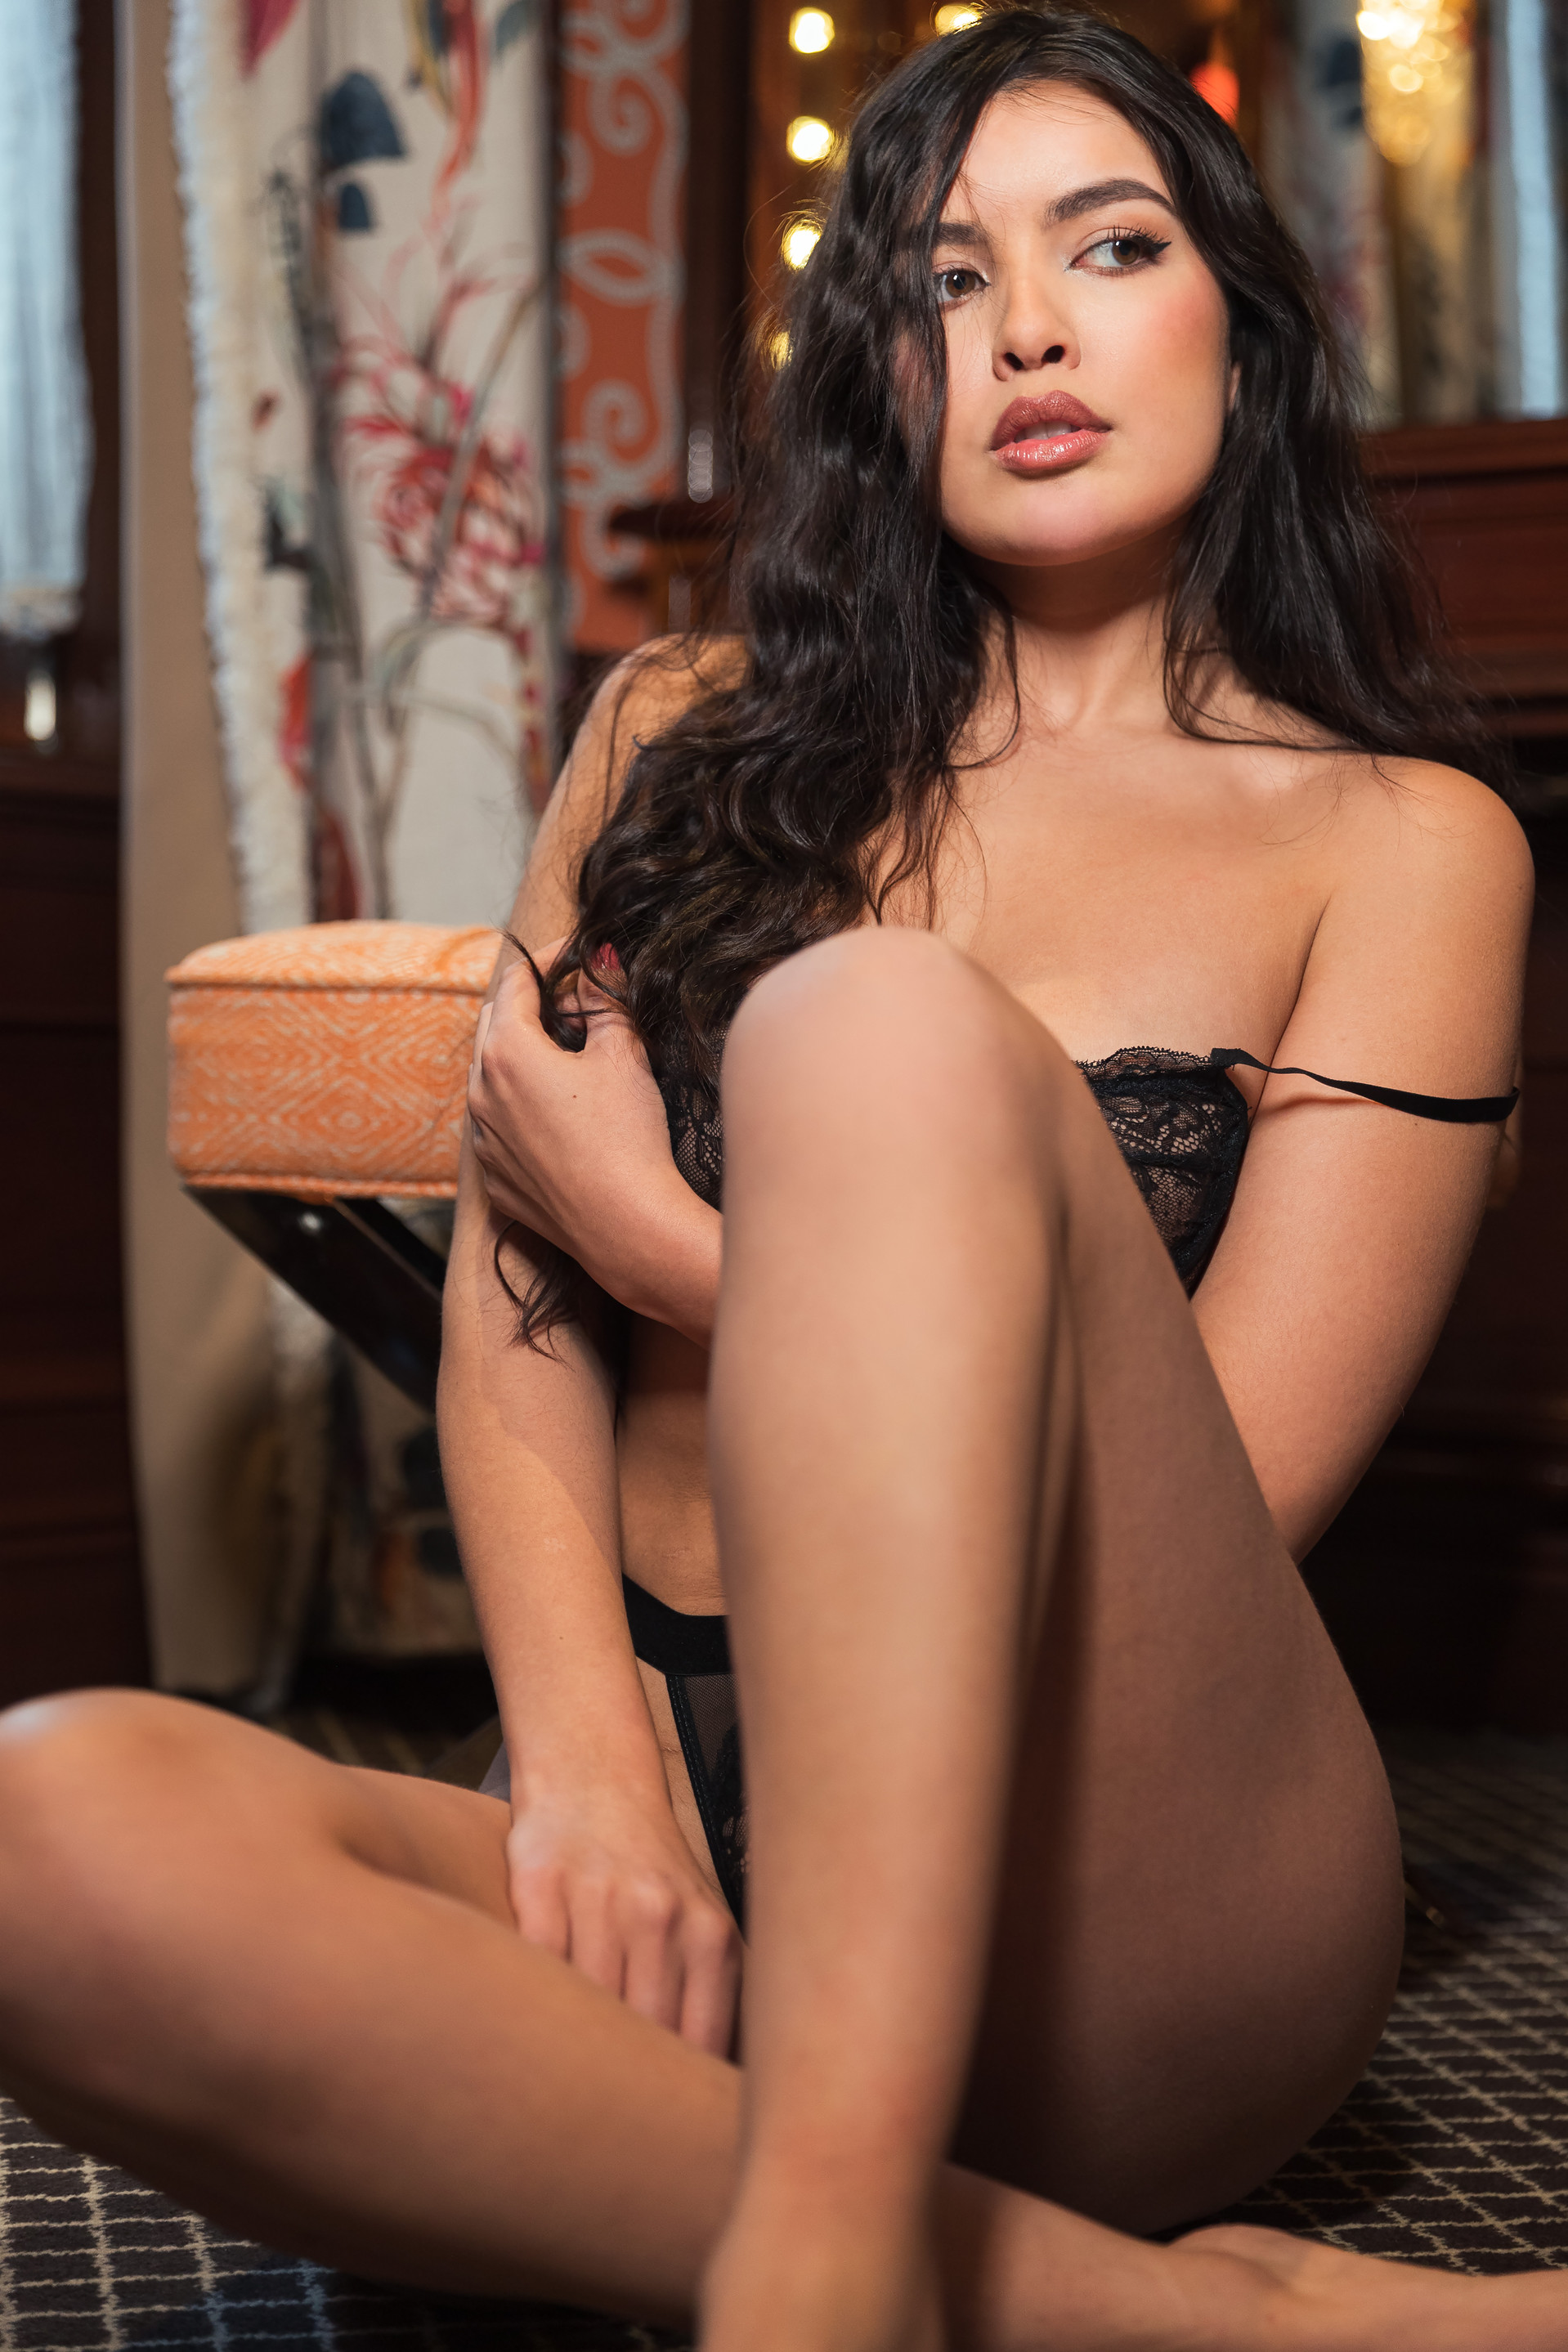 20210209 - MISBEHAVE - Shelly 011.jpg